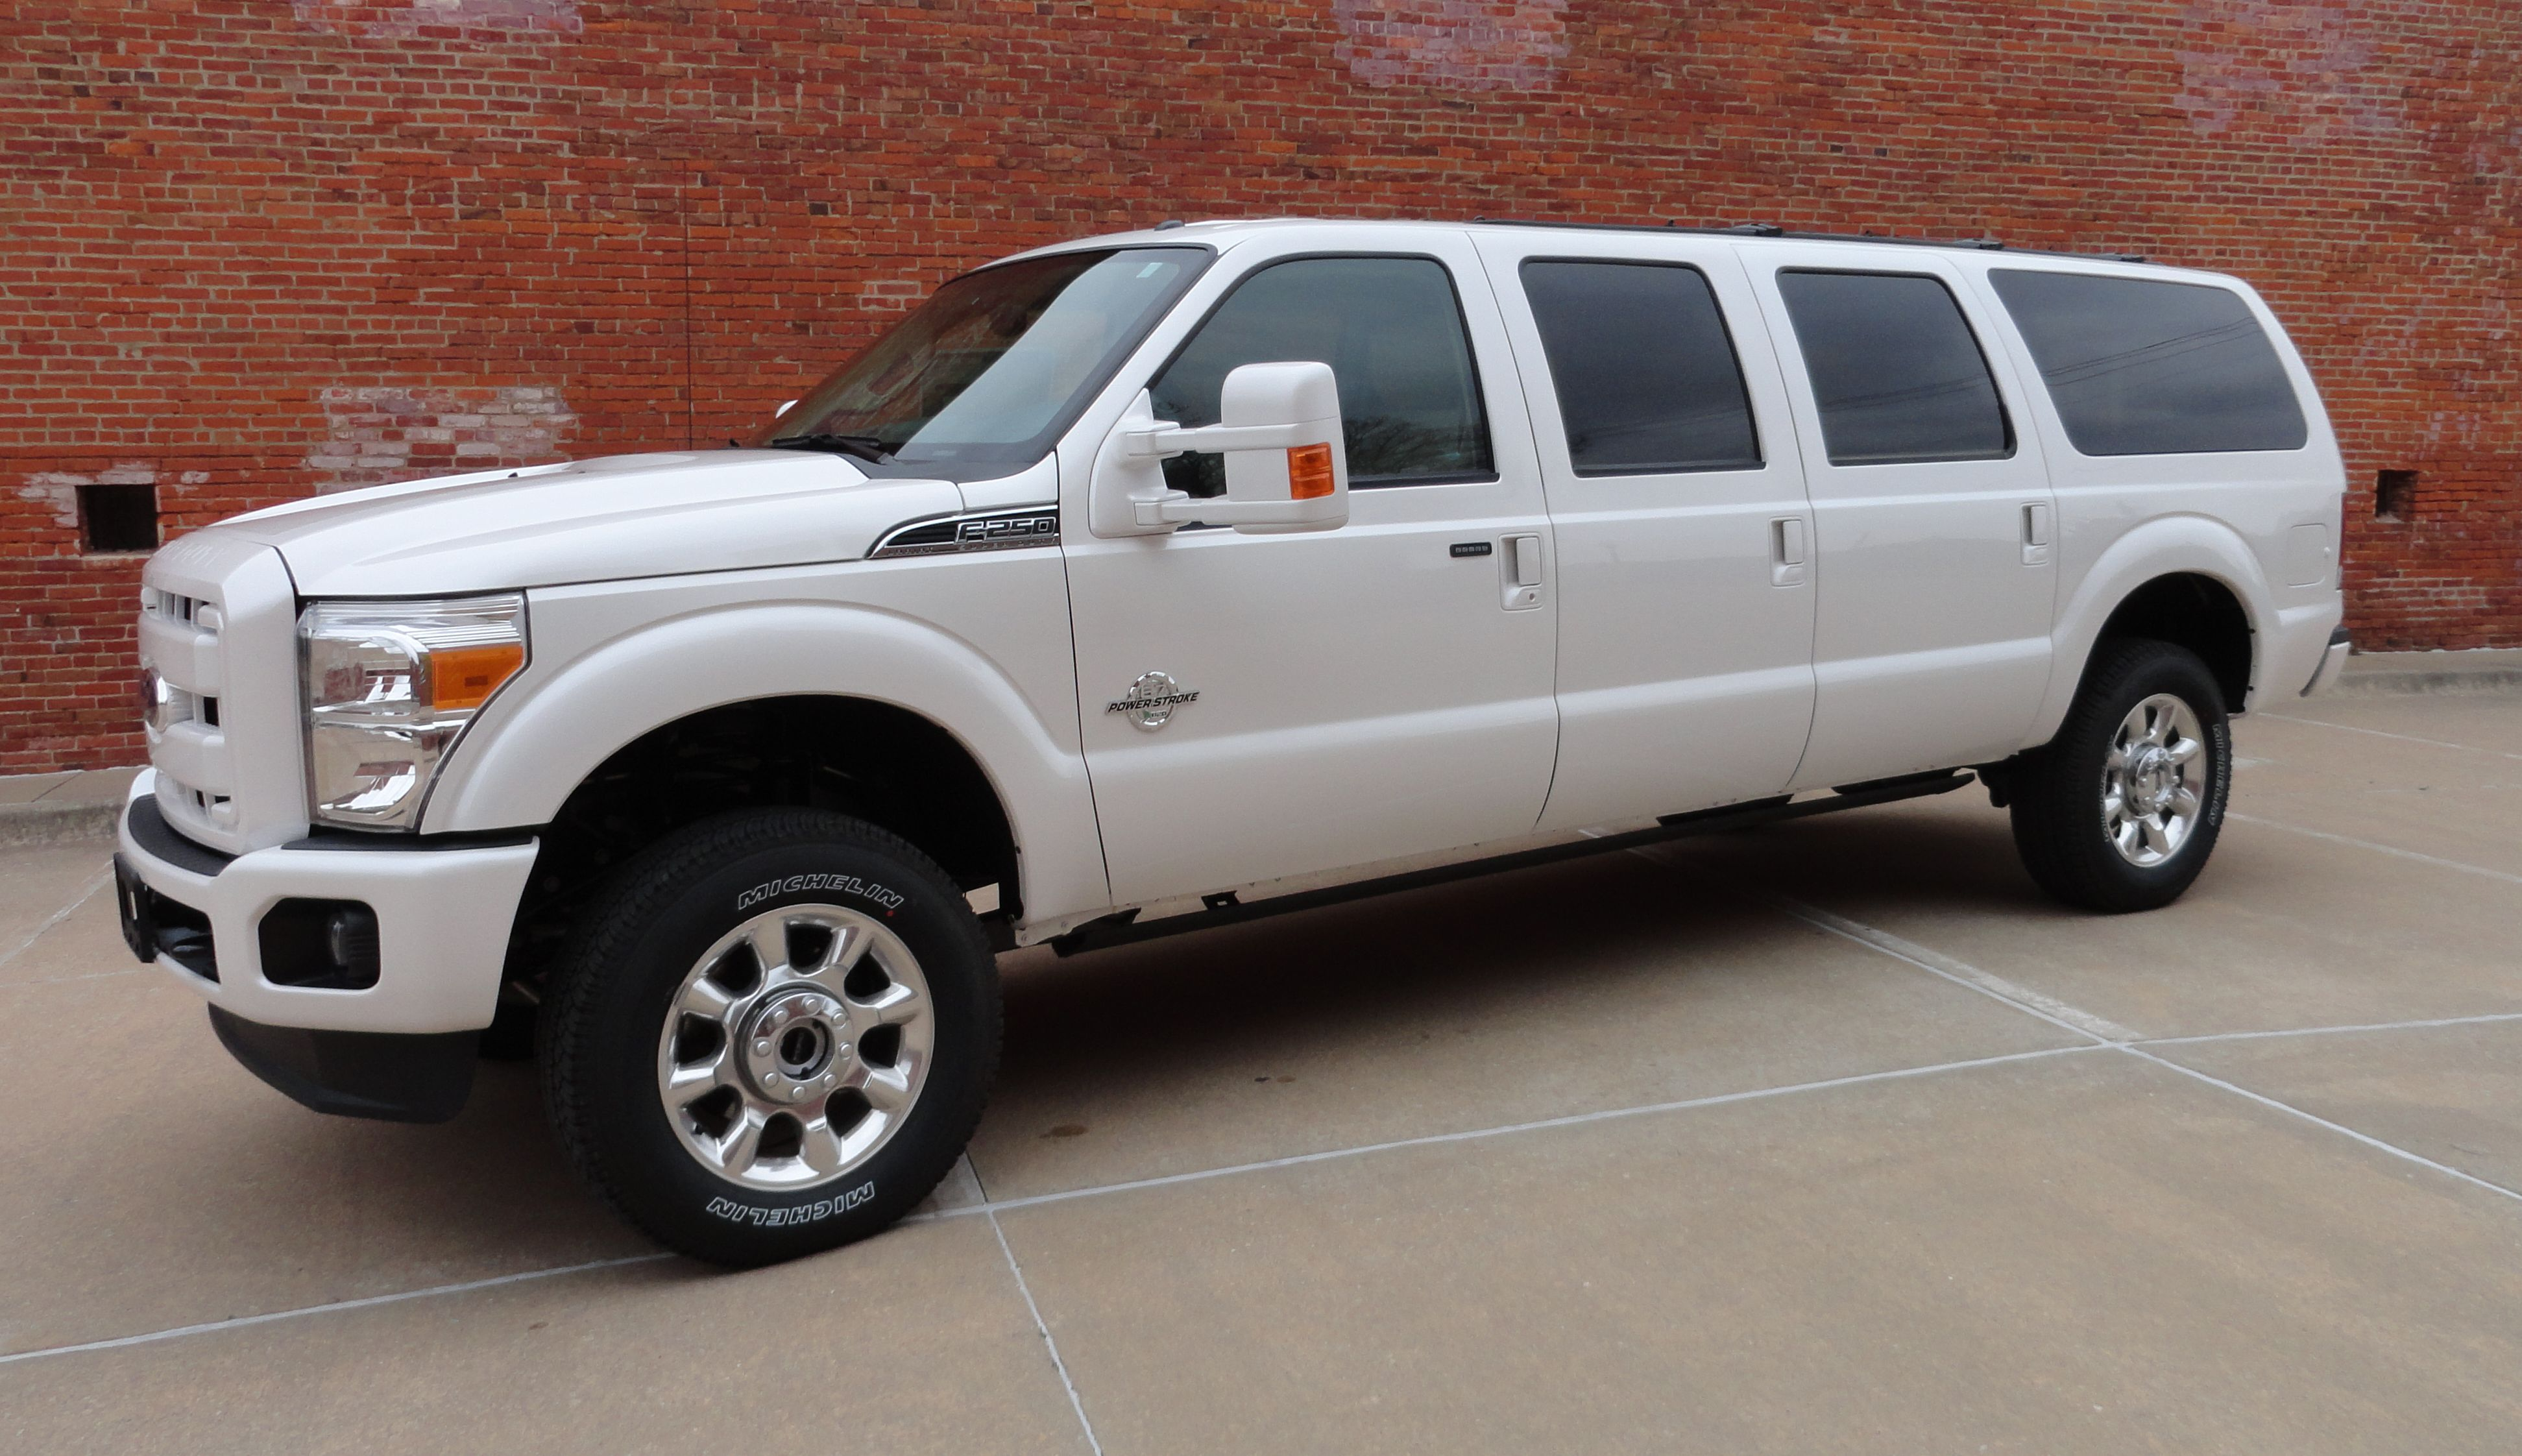 New Ford Excursion >> New Ford Excursion Suv Pinterest Ford Excursion Ford And Ford